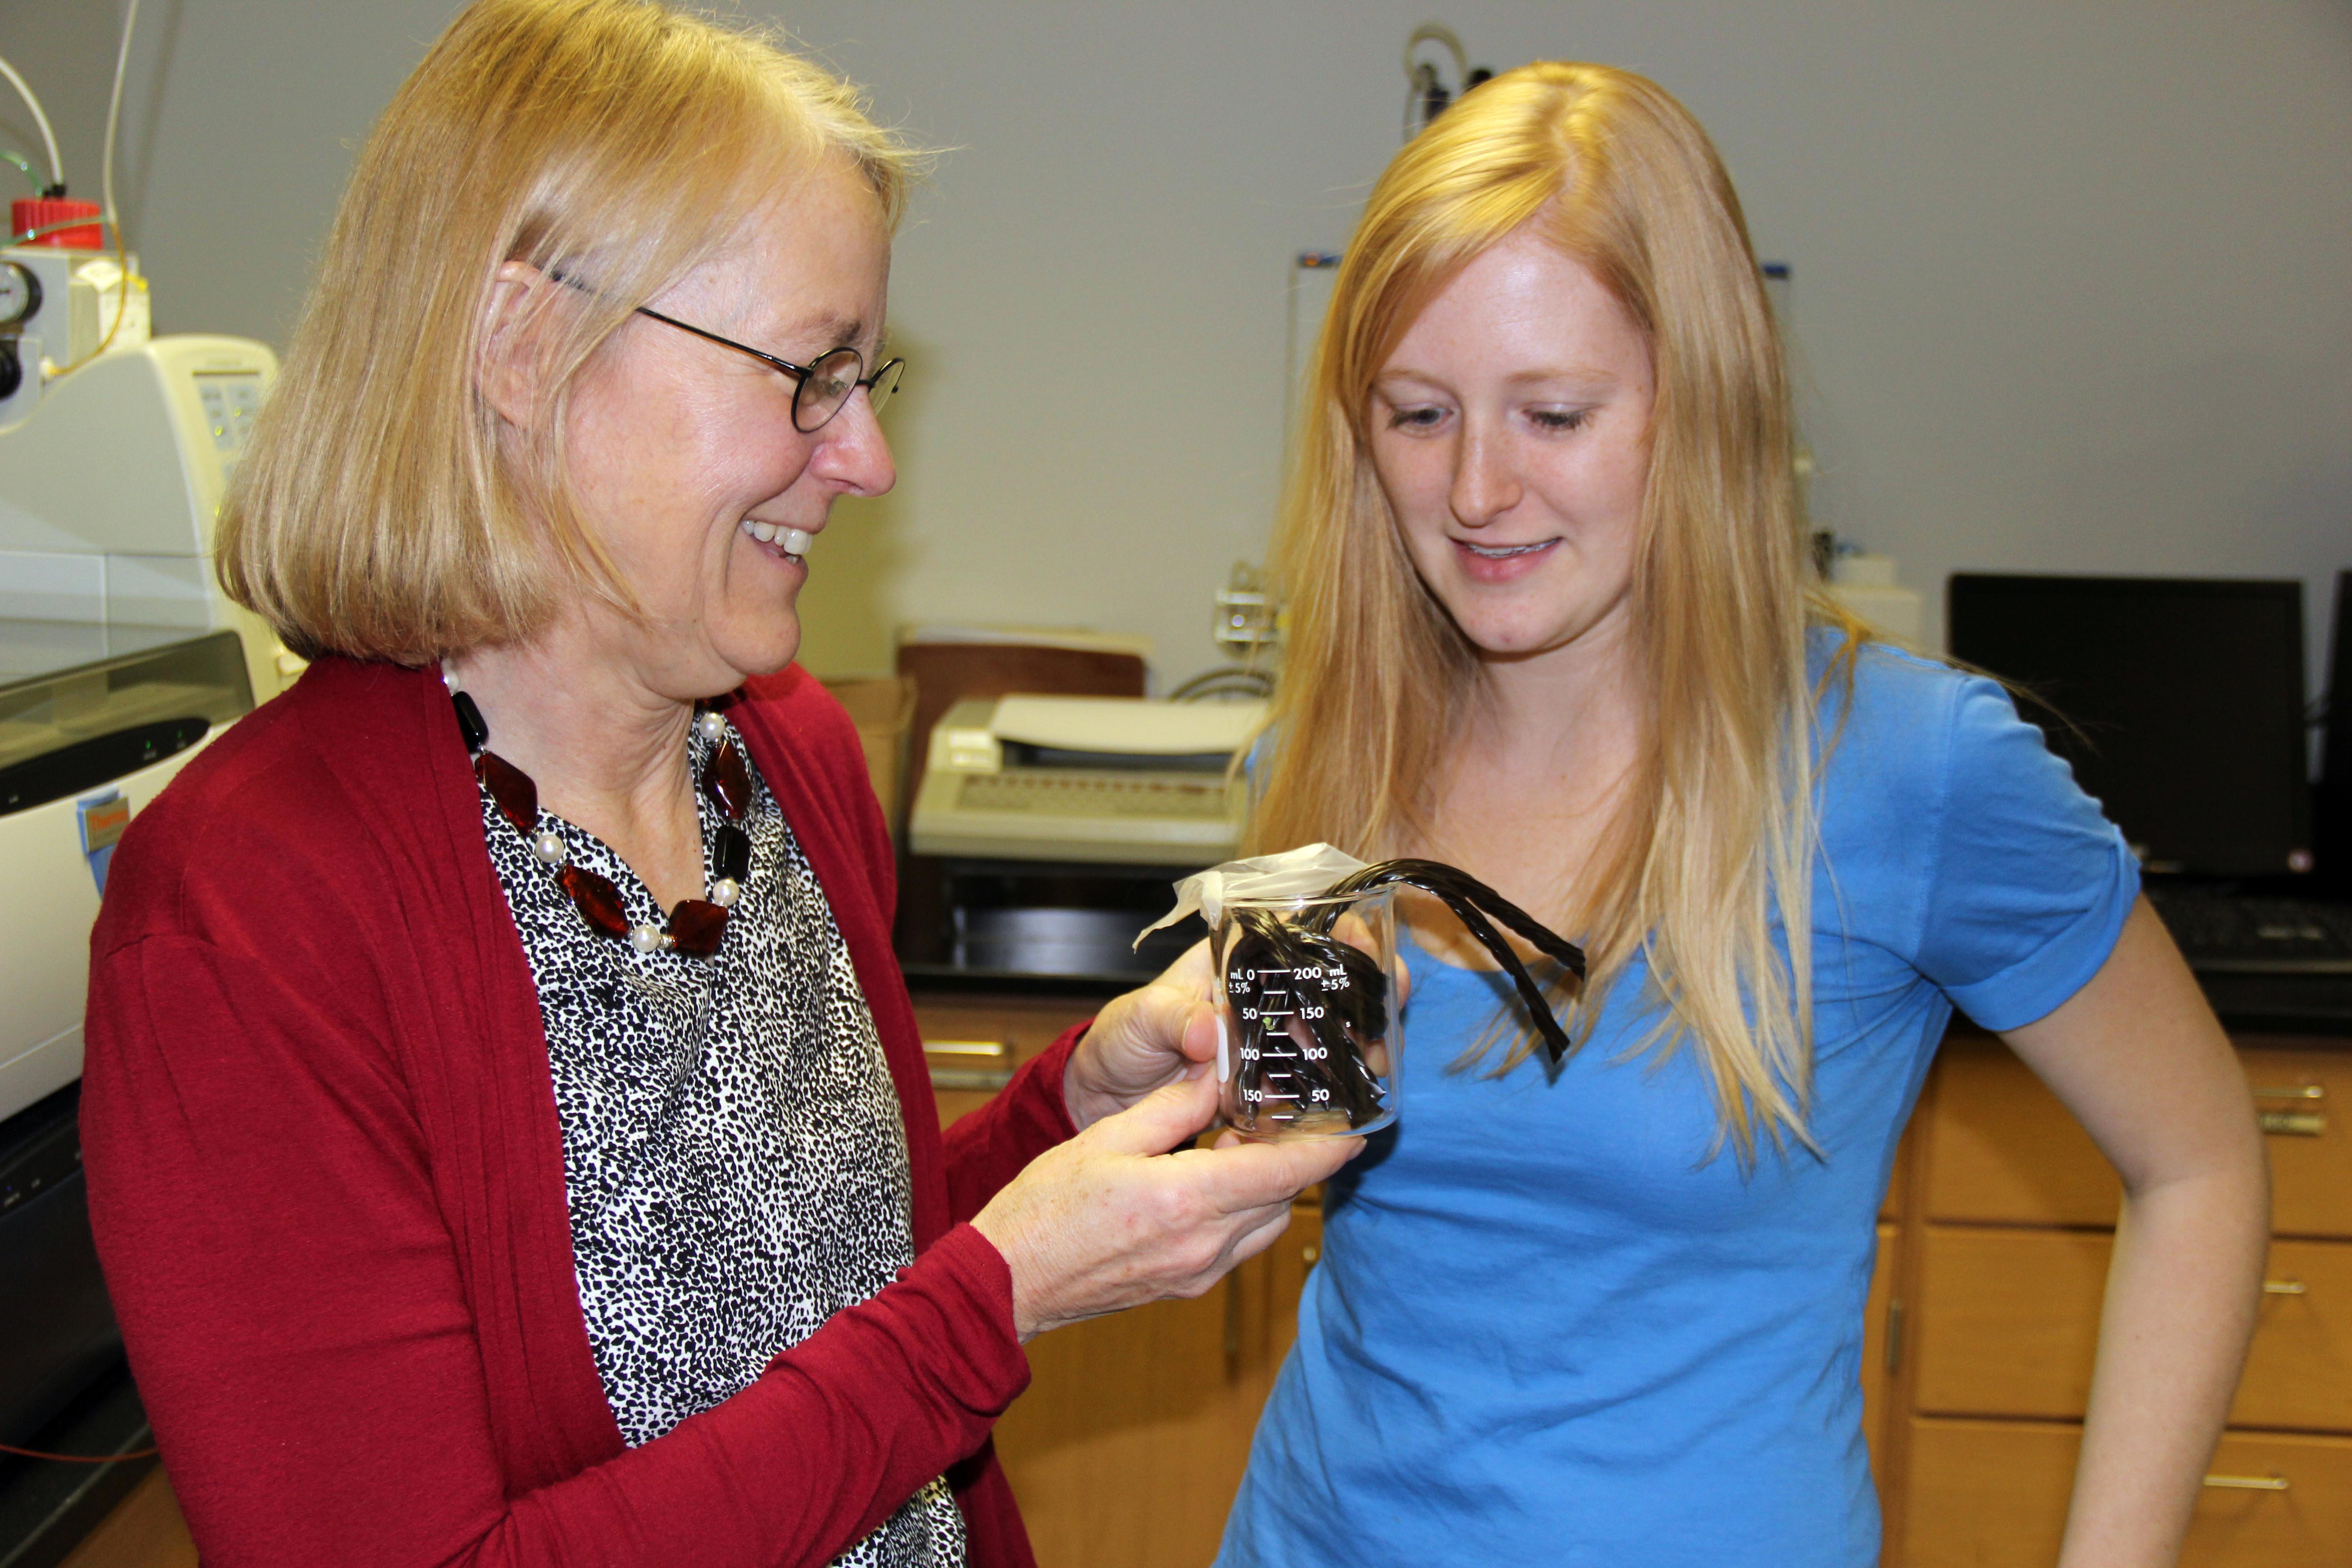 Licorice in beakers used to give students an example of odor in contaminated water.